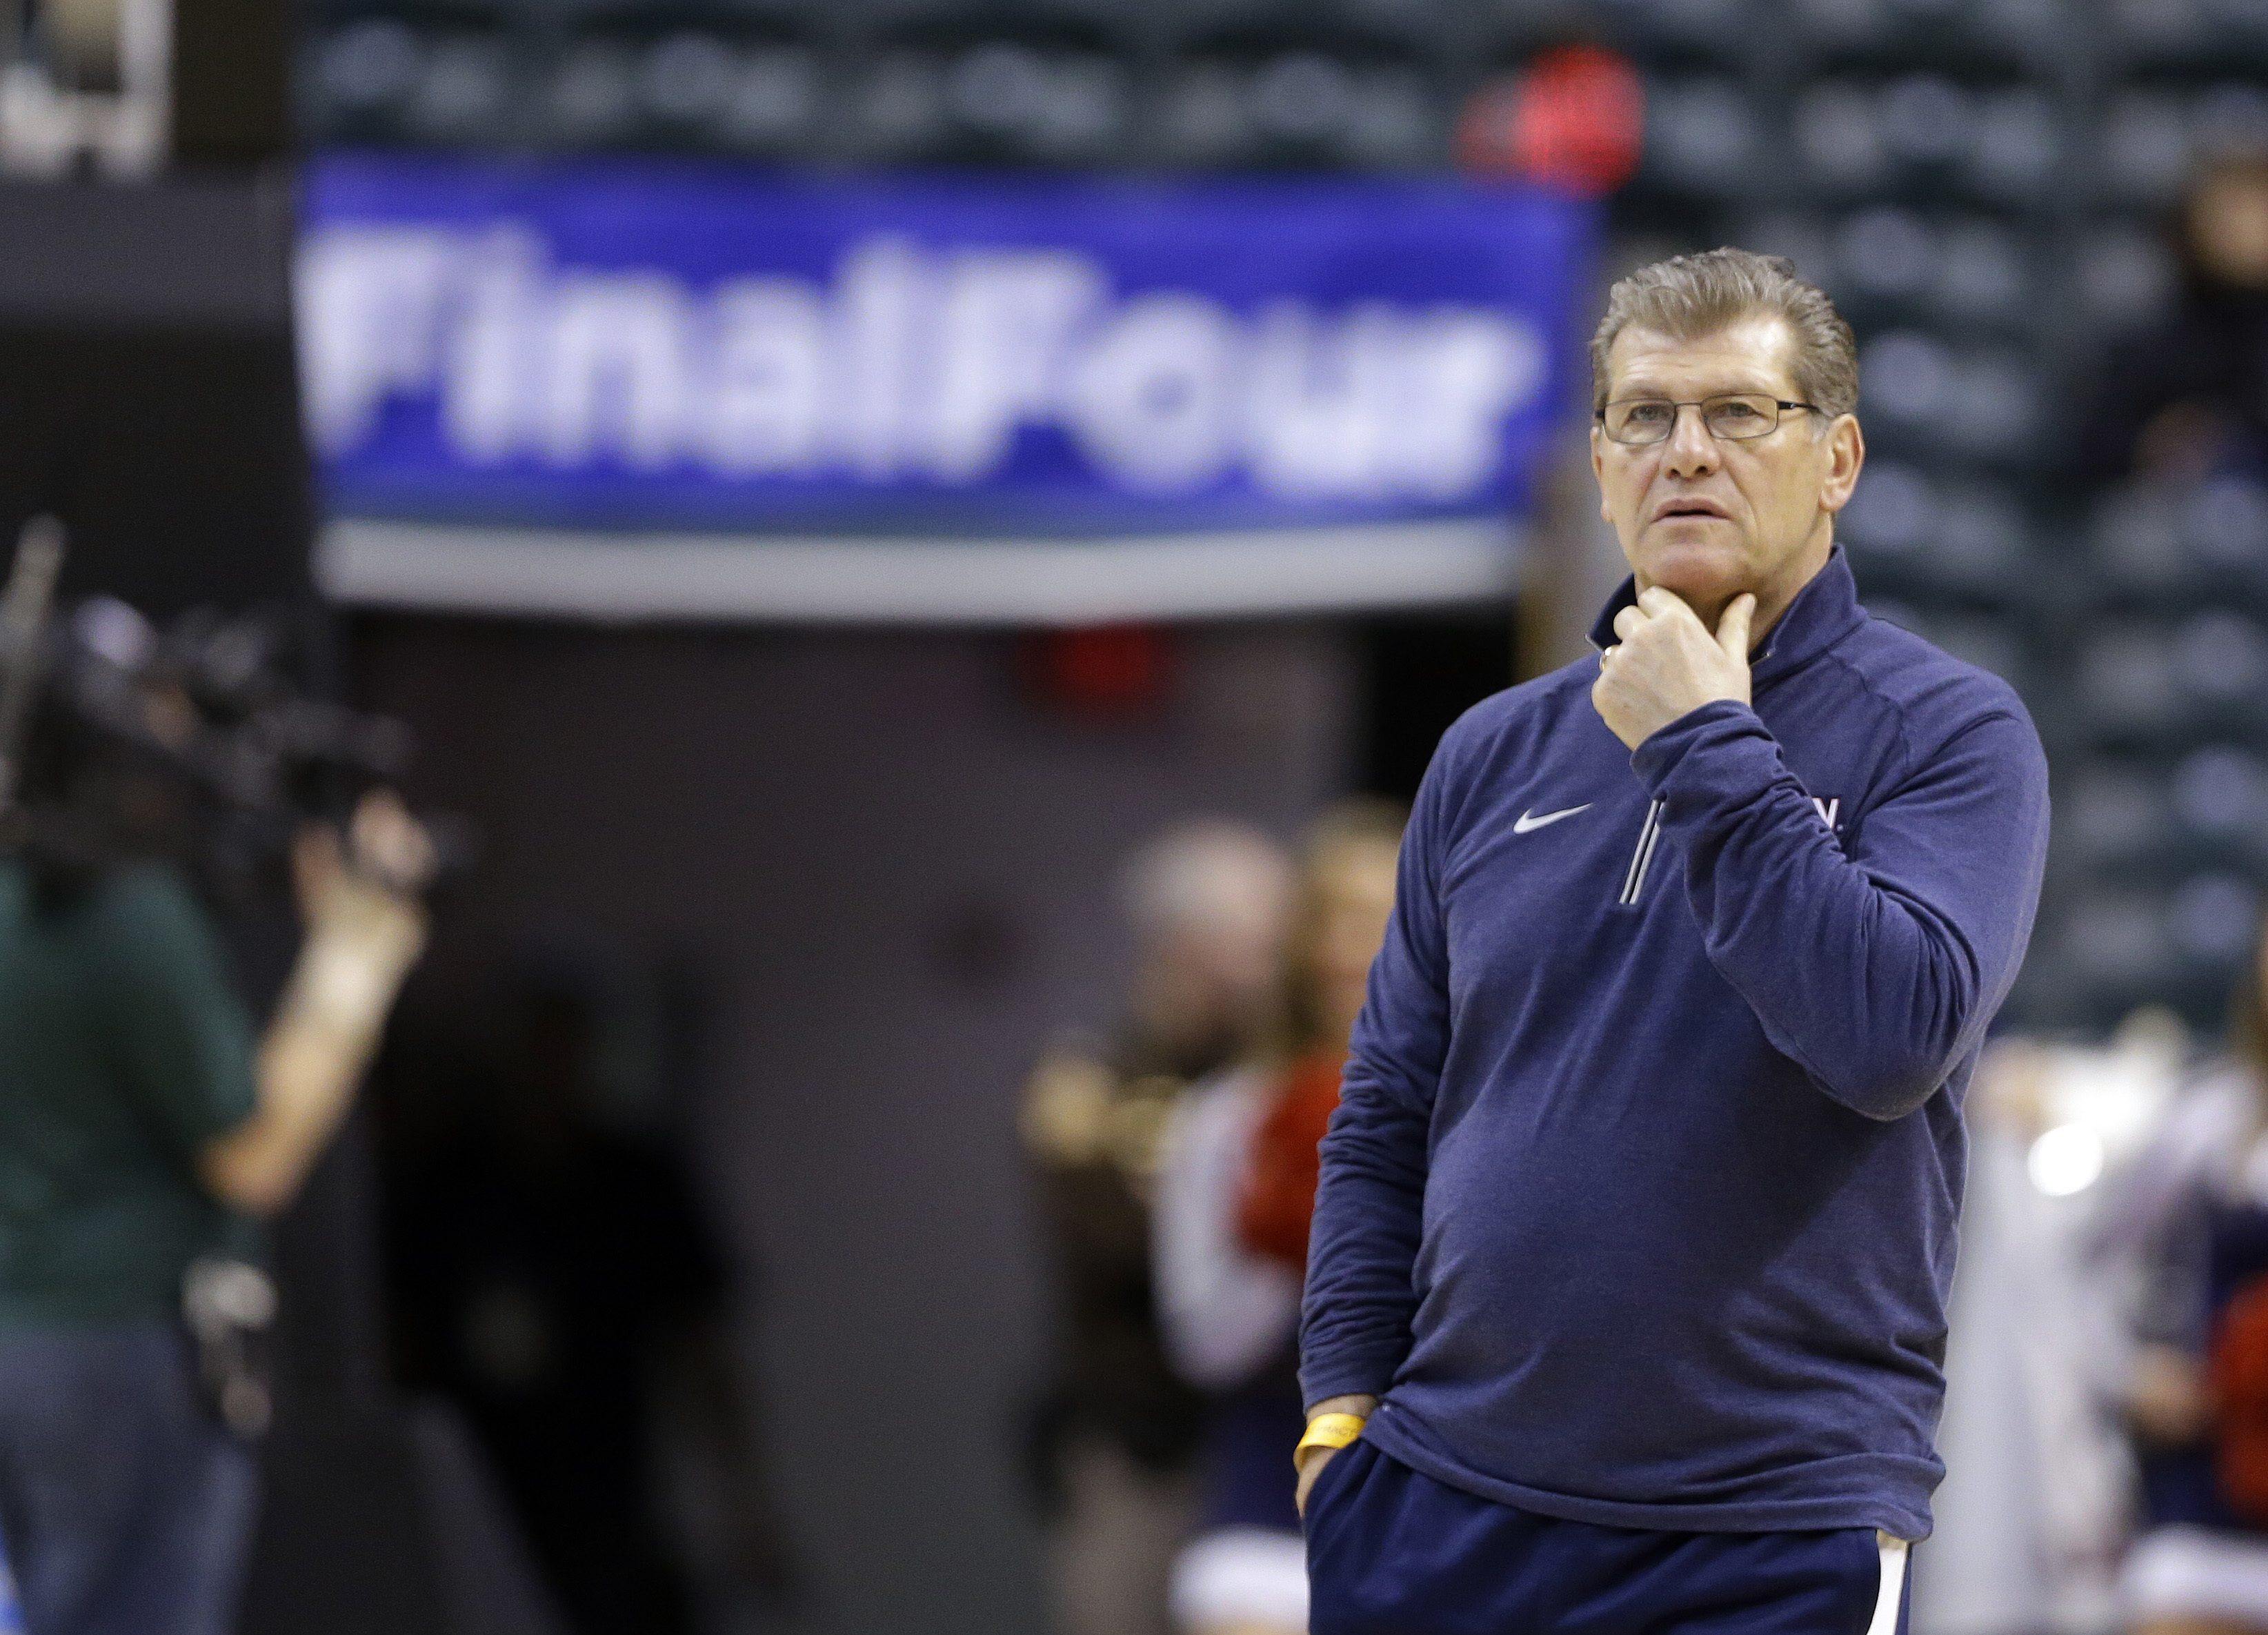 Connecticut head coach Geno Auriemma watches during college basketball practice at the women's Final Four in the NCAA Tournament Saturday, April 2, 2016, in Indianapolis.  (AP Photo/Michael Conroy)